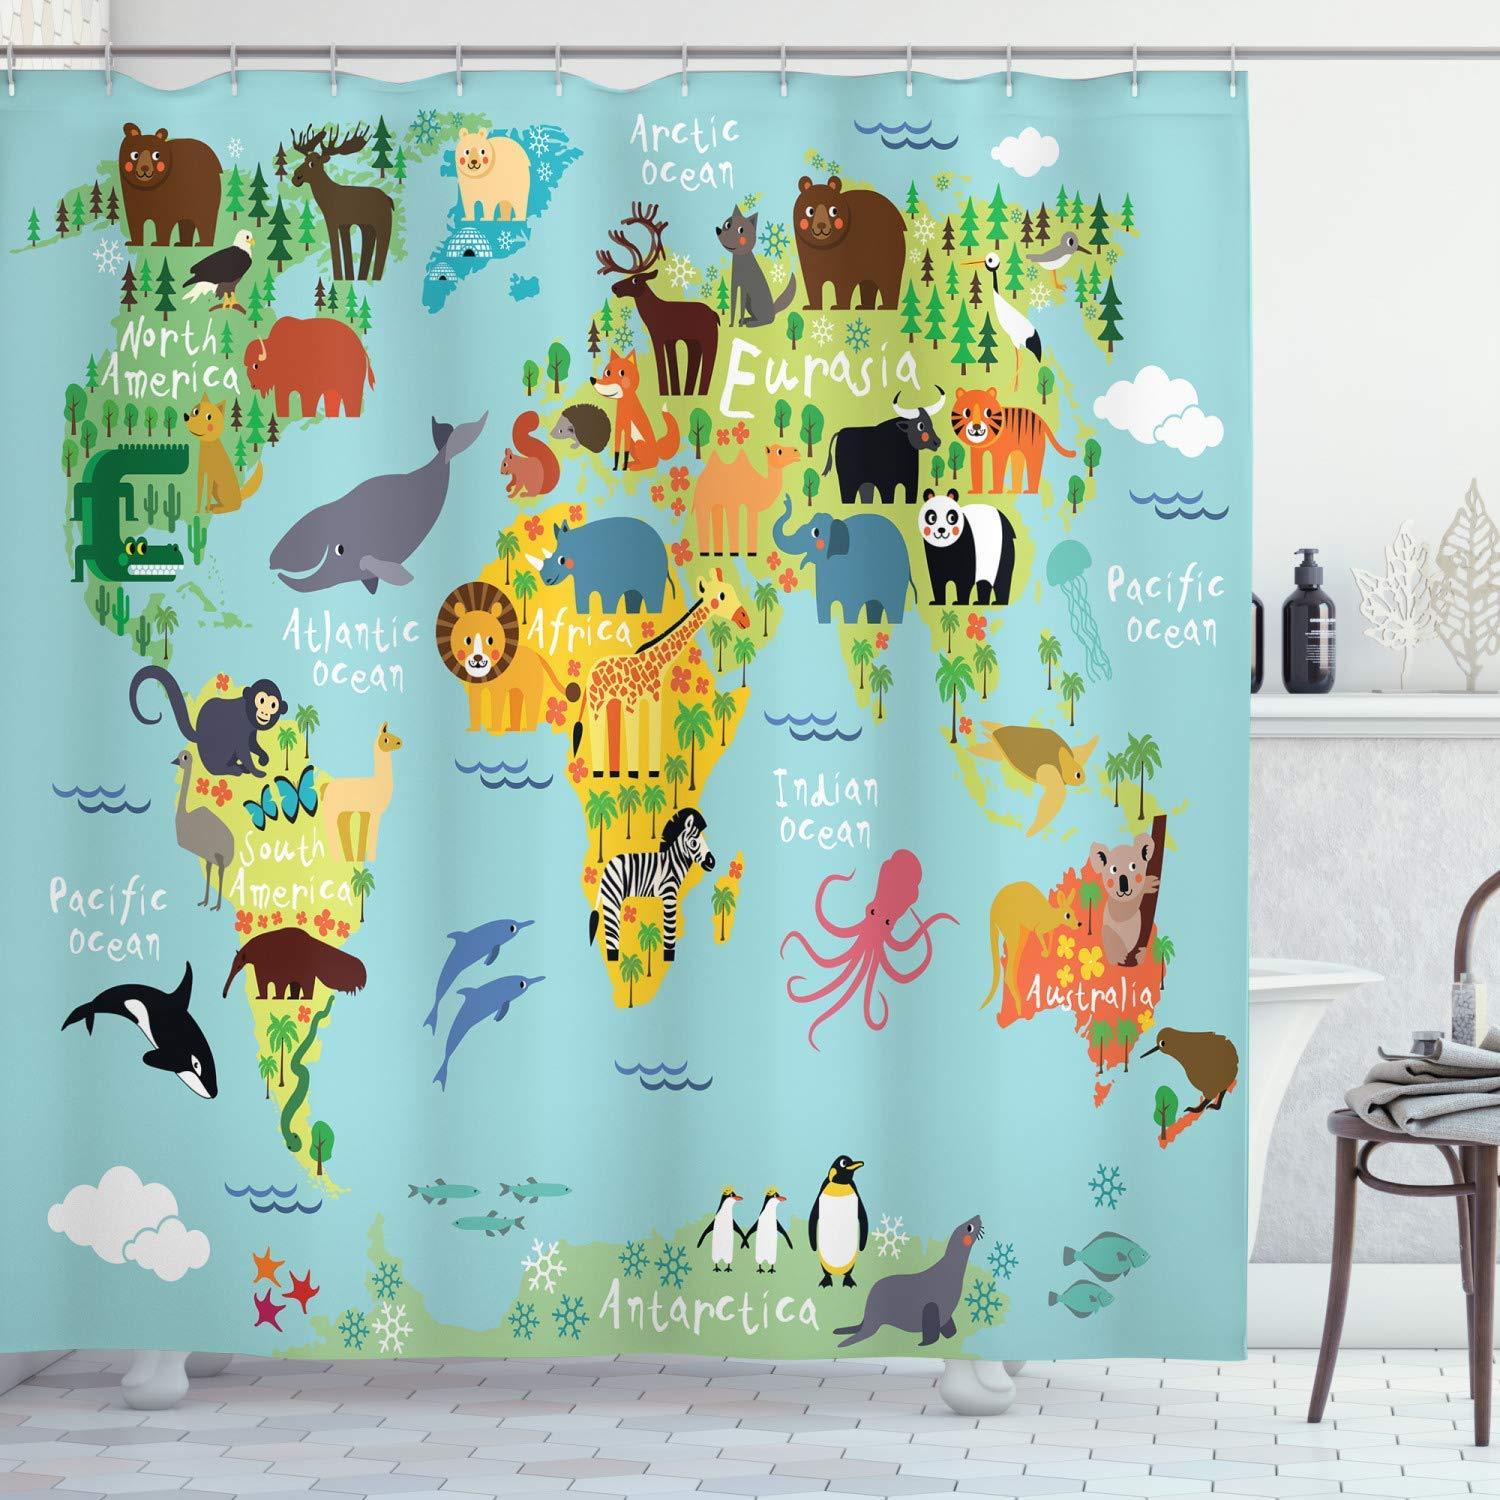 the best kids shower curtain may 2021